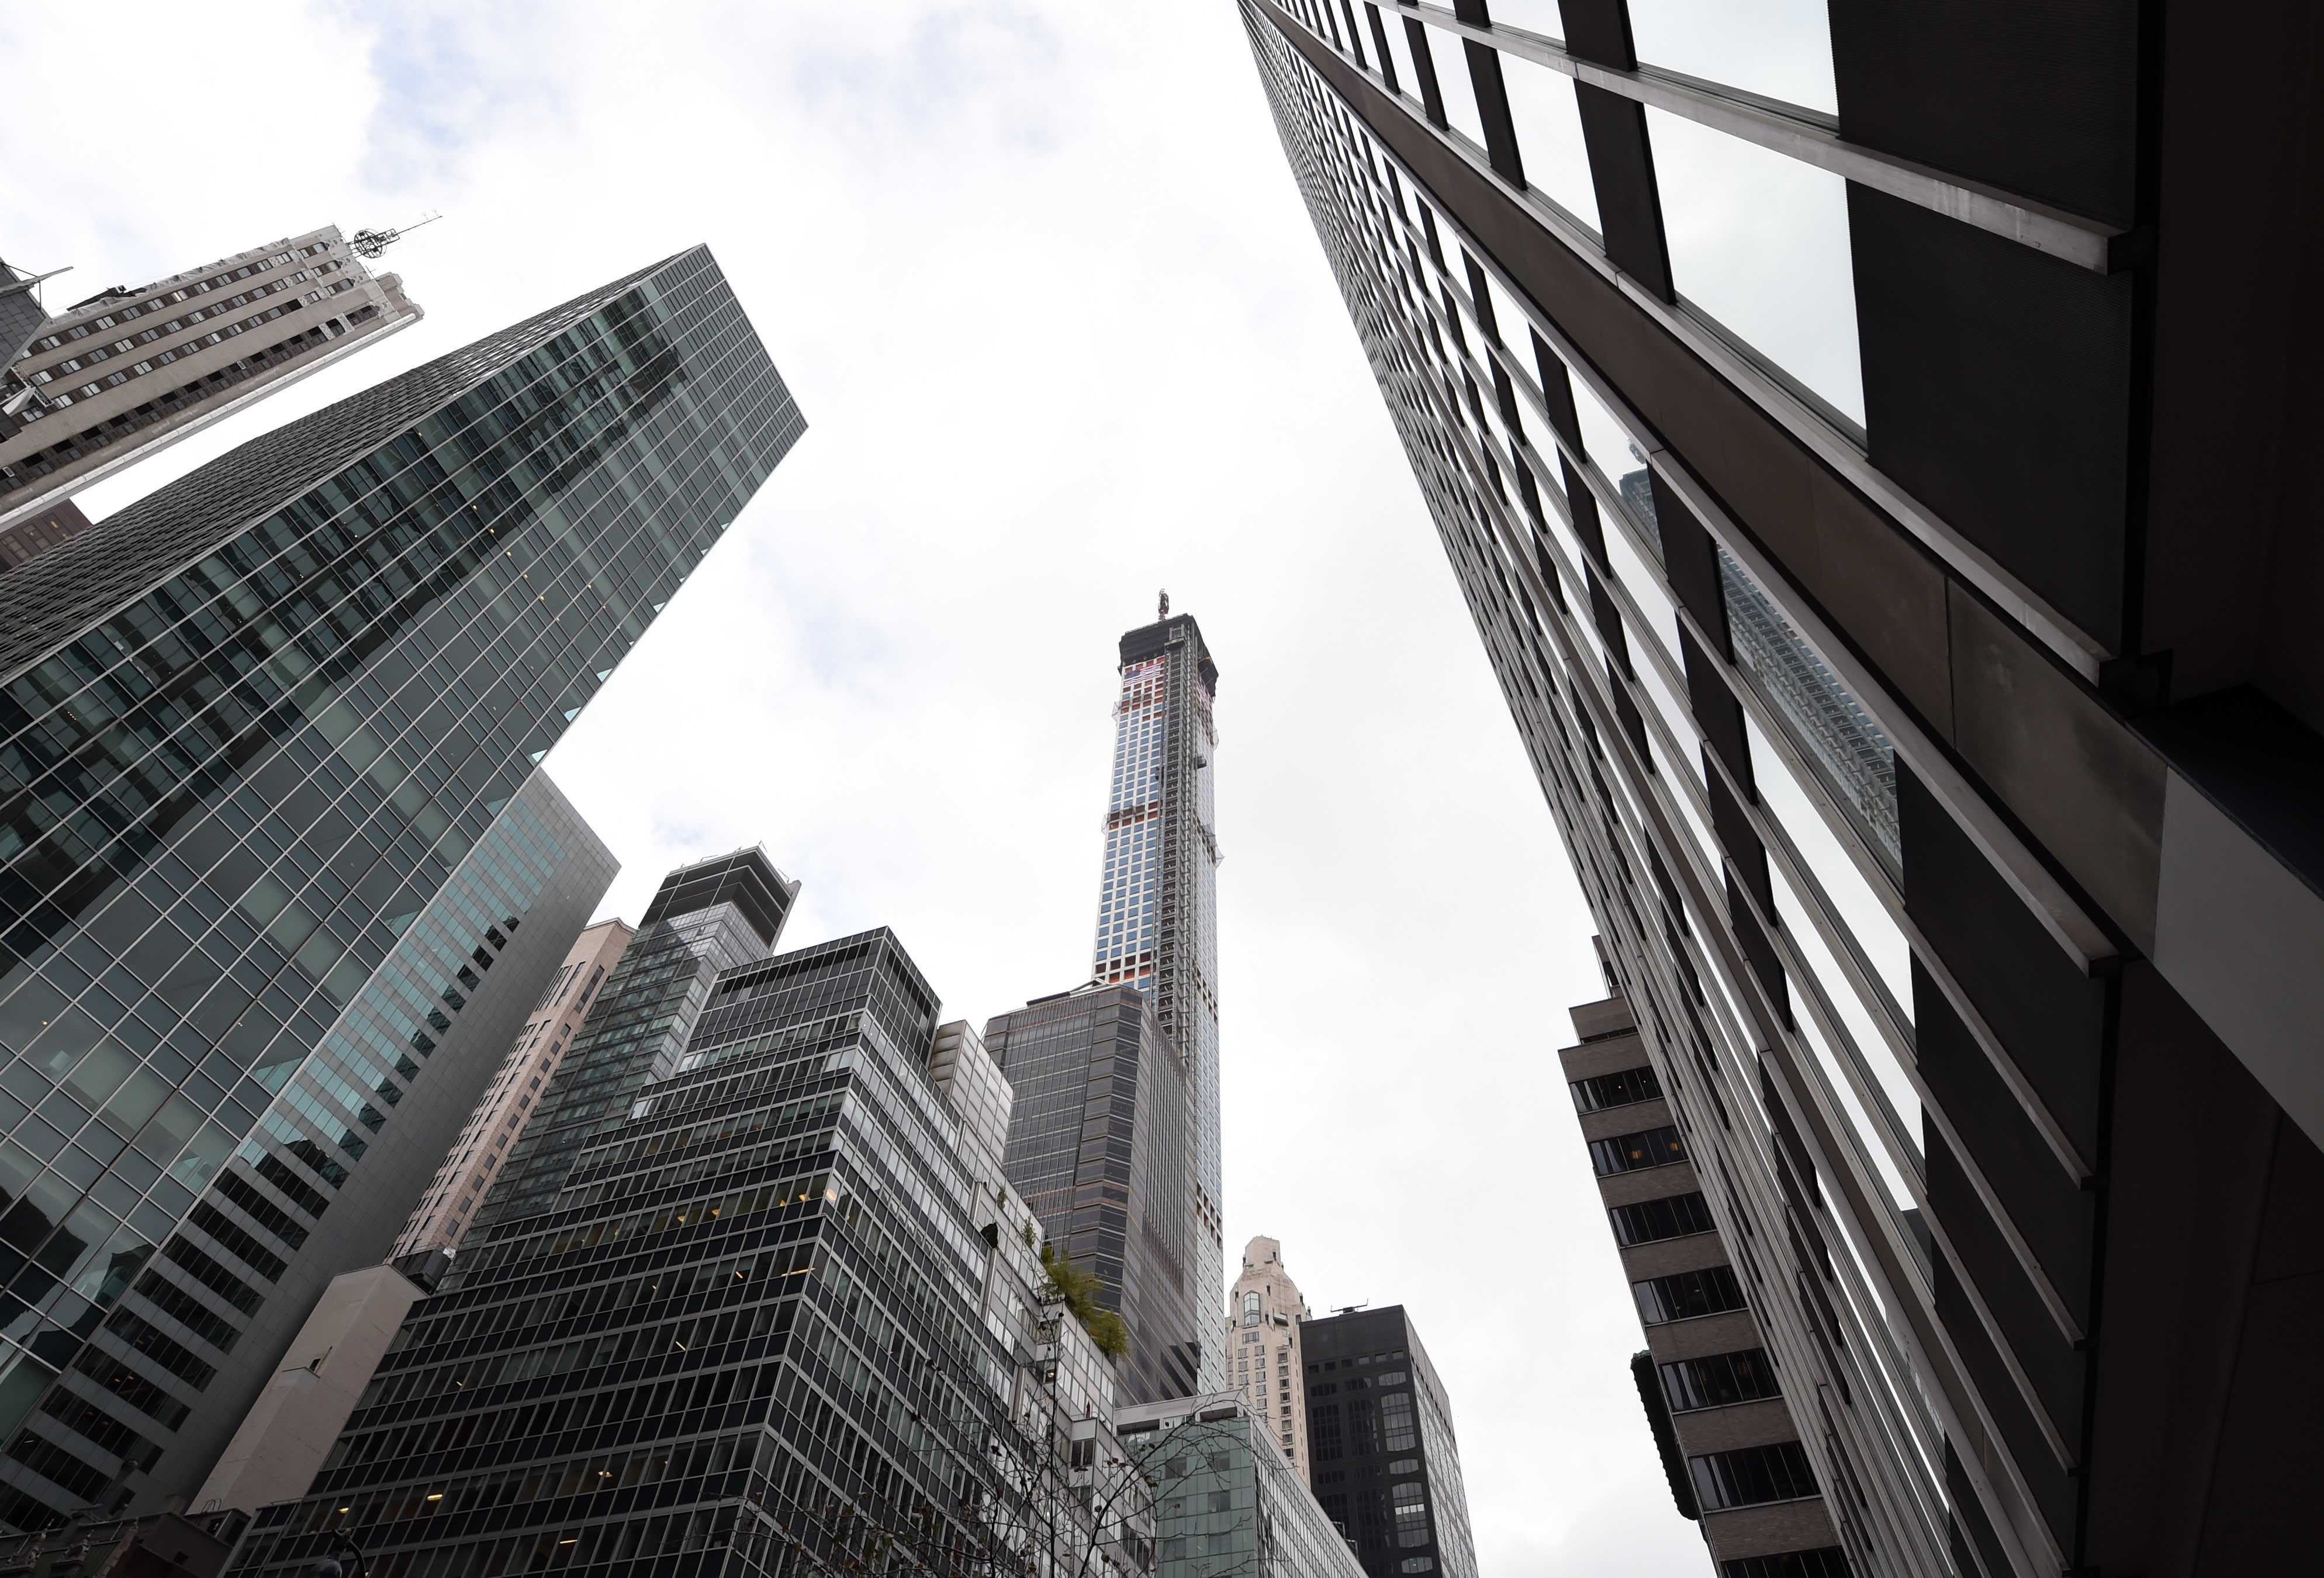 Manhattan real estate deals plunge 84% in May amid coronavirus, protests